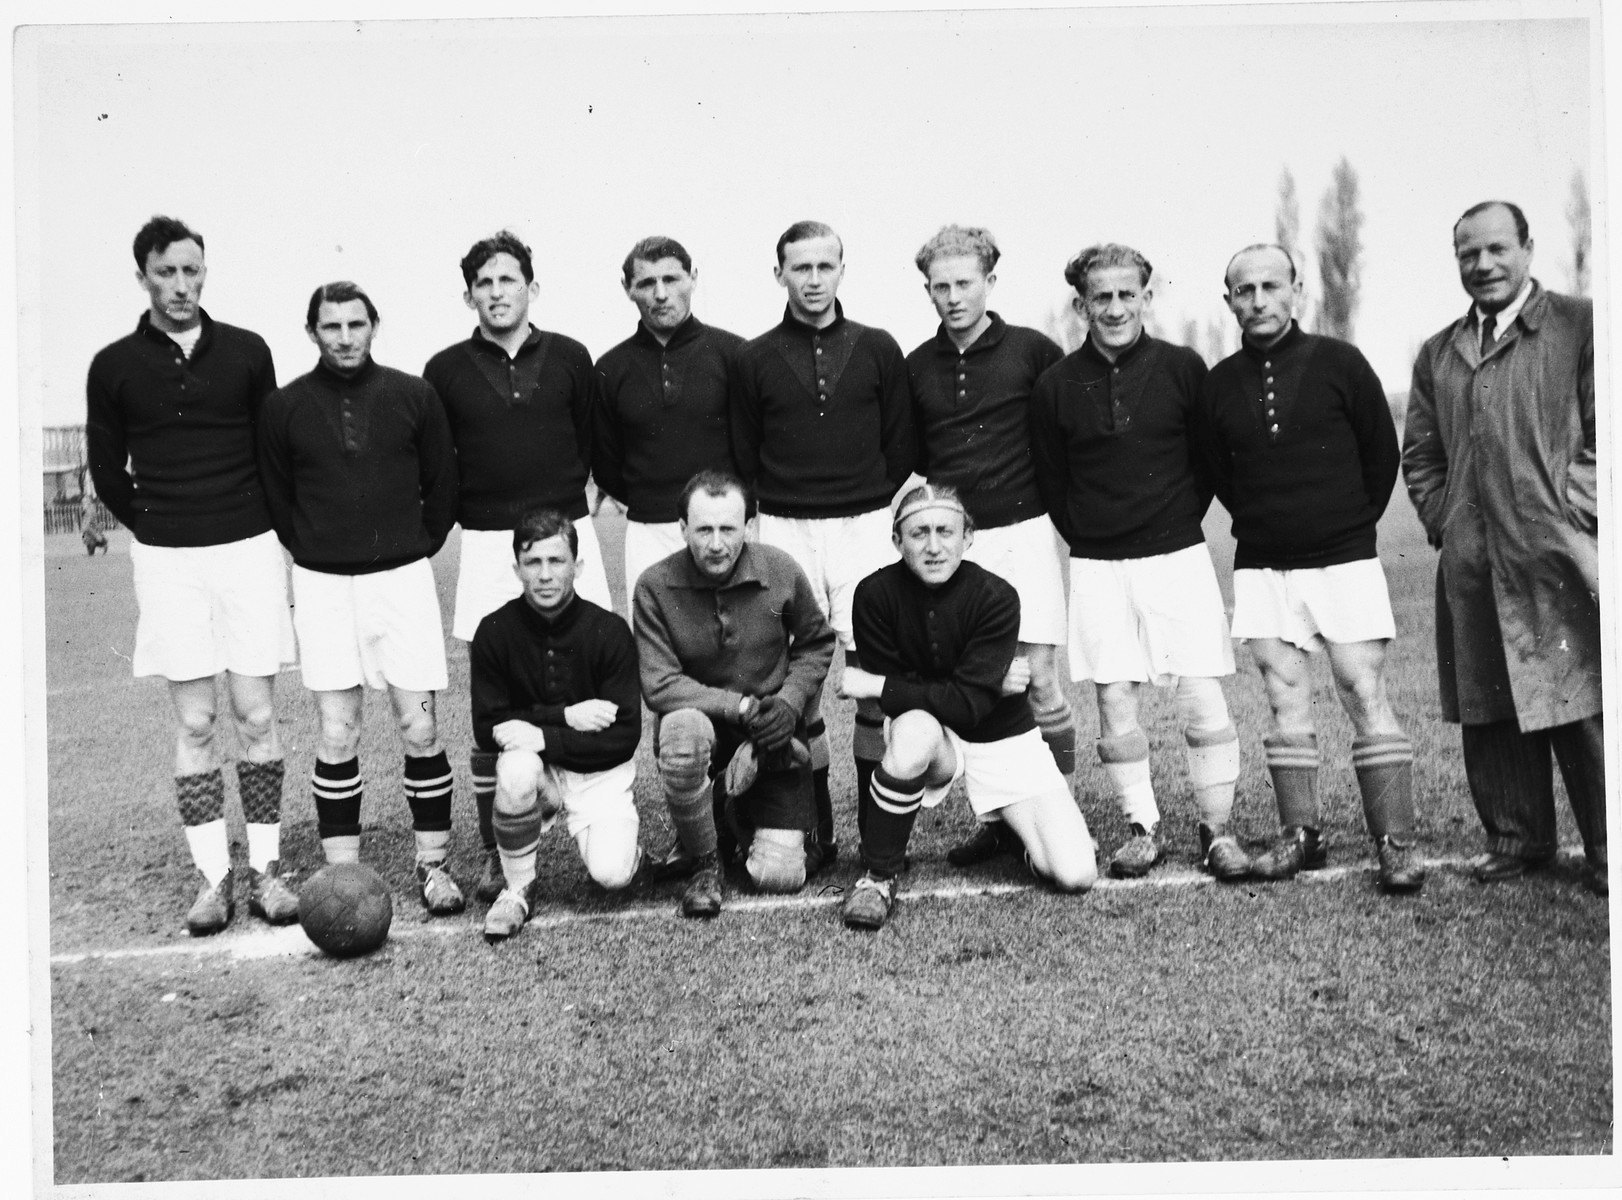 Group portrait of the members of the Schlachtensee displaced persons camp soccer team.  Among those pictured are Moritz Sachs (standing third from the left), Jacob (Yanek) Czarny (later Jack Charney, fourth from the left); and Simon Krumhloz (the manager, standing on the right in the coat and tie).